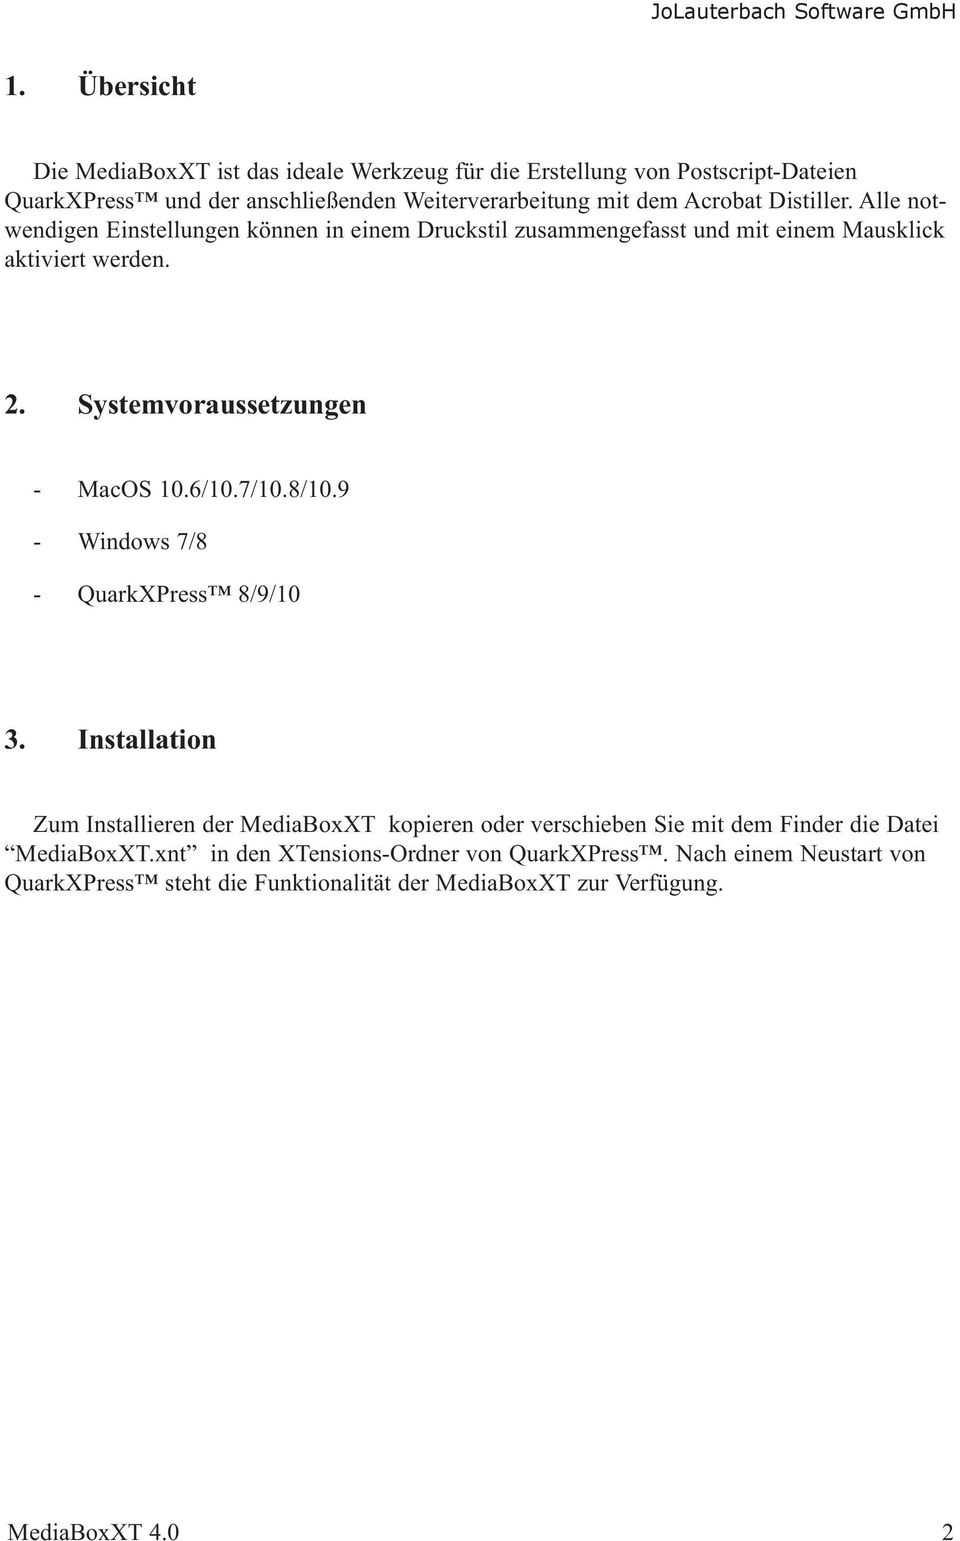 Systemvoraussetzungen - MacOS 10.6/10.7/10.8/10.9 - Windows 7/8 - QuarkXPress 8/9/10 3.